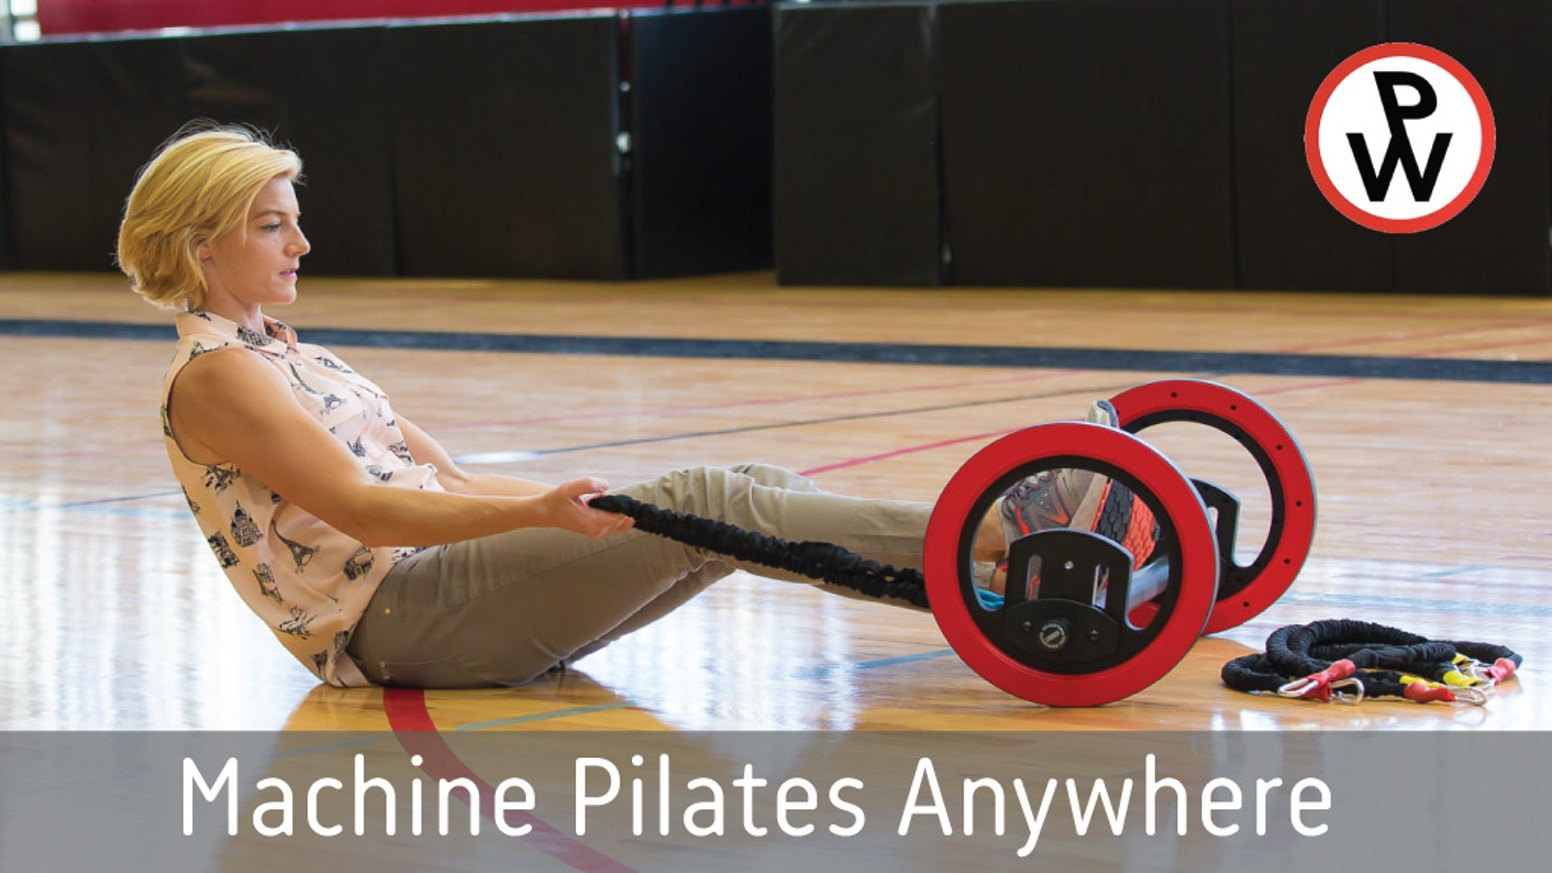 Pilates Wheel's innovative design and expert instruction allow you to perform 100s of machine Pilates moves anywhere, anytime.